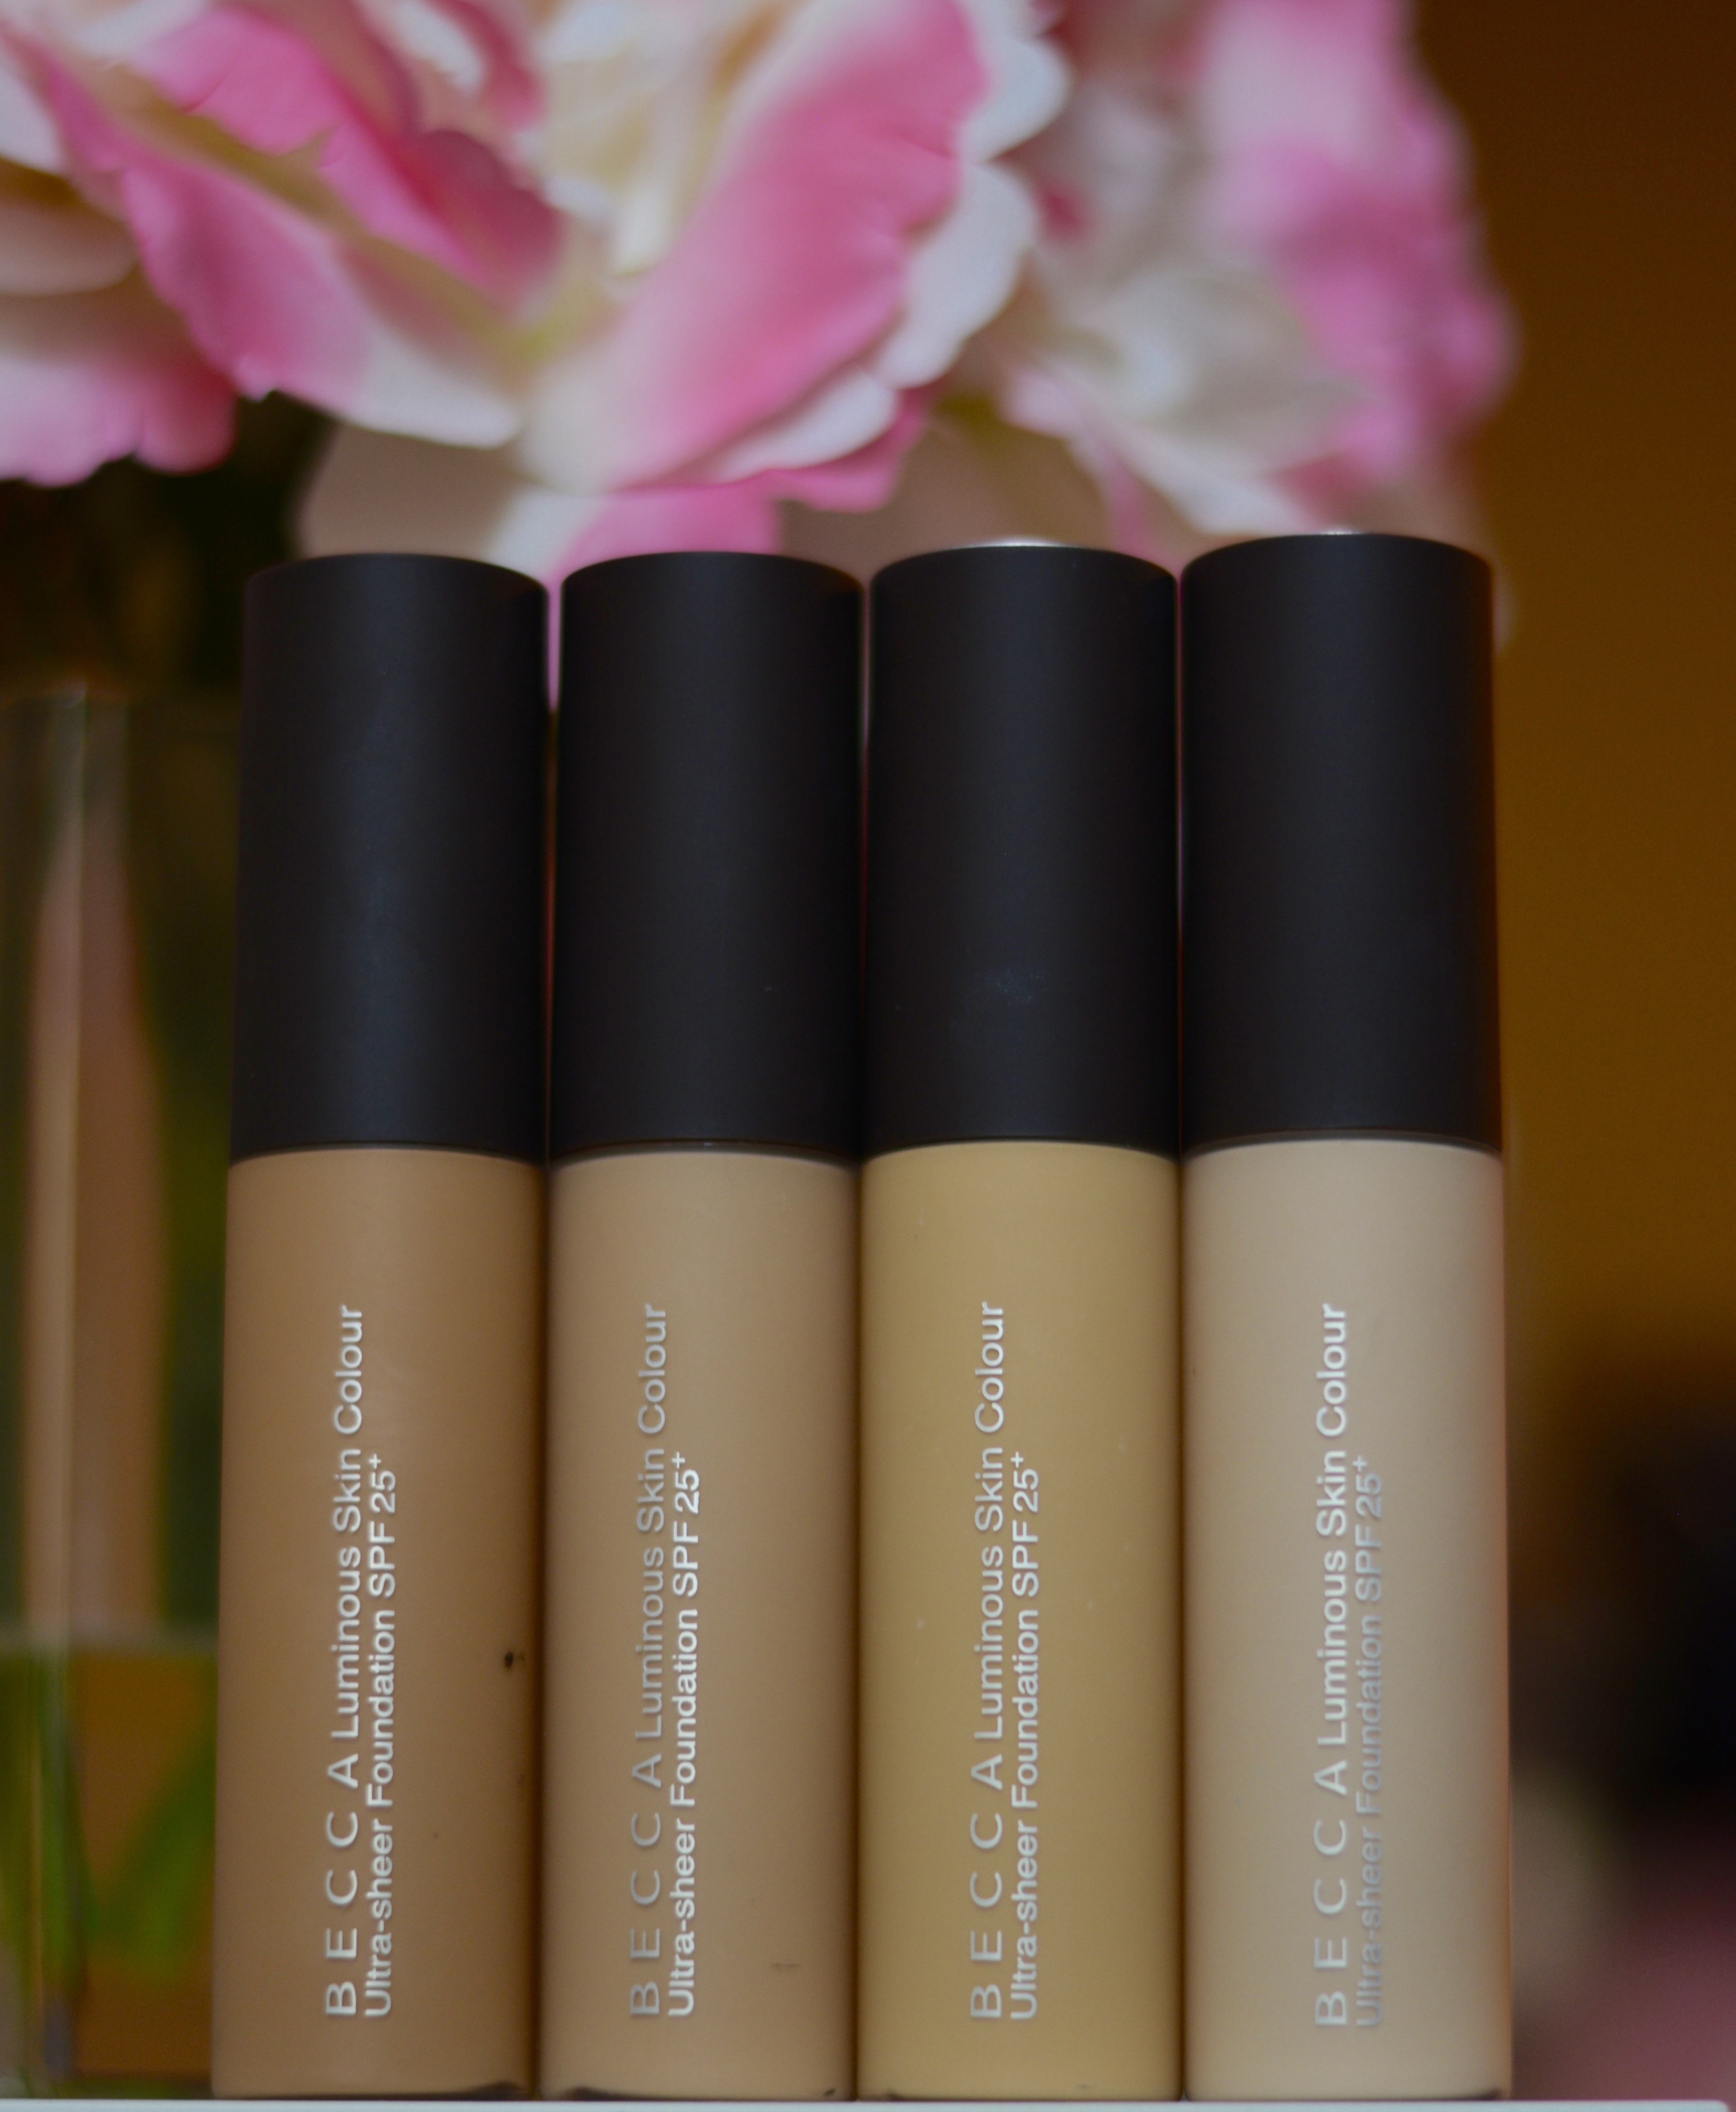 Colour care foundation - I Can T Believe It Has Taken Me This Long To Blog About My Favorite Foundation Becca S Luminous Skin Colour Is An Ultra Sheer Foundation With Spf 25